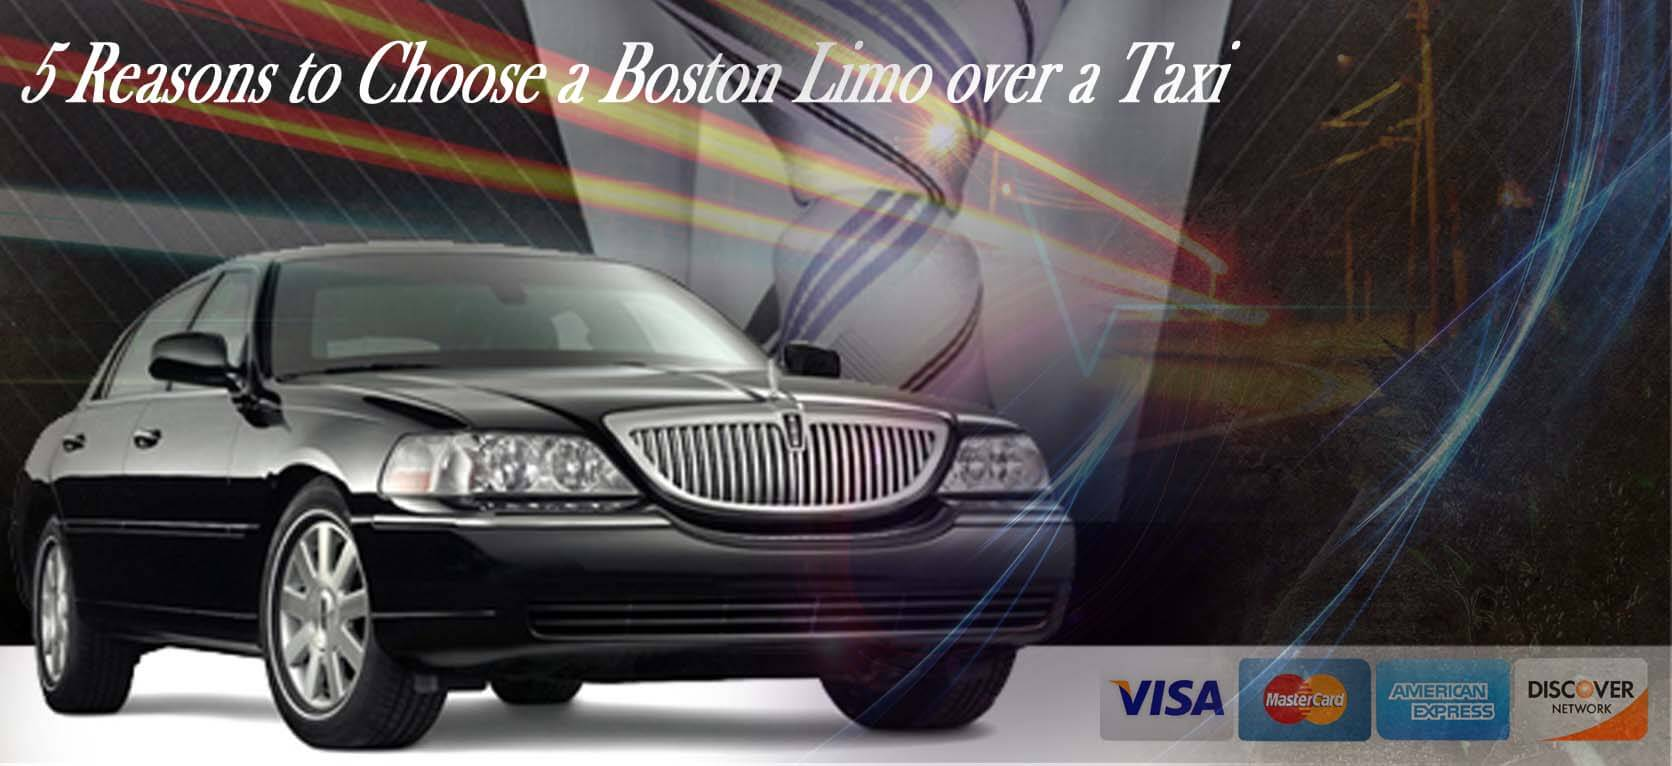 road_lights_hd_widescreen_wallpapers_ 5 Reasons to Choose a Boston Limo over a Taxi